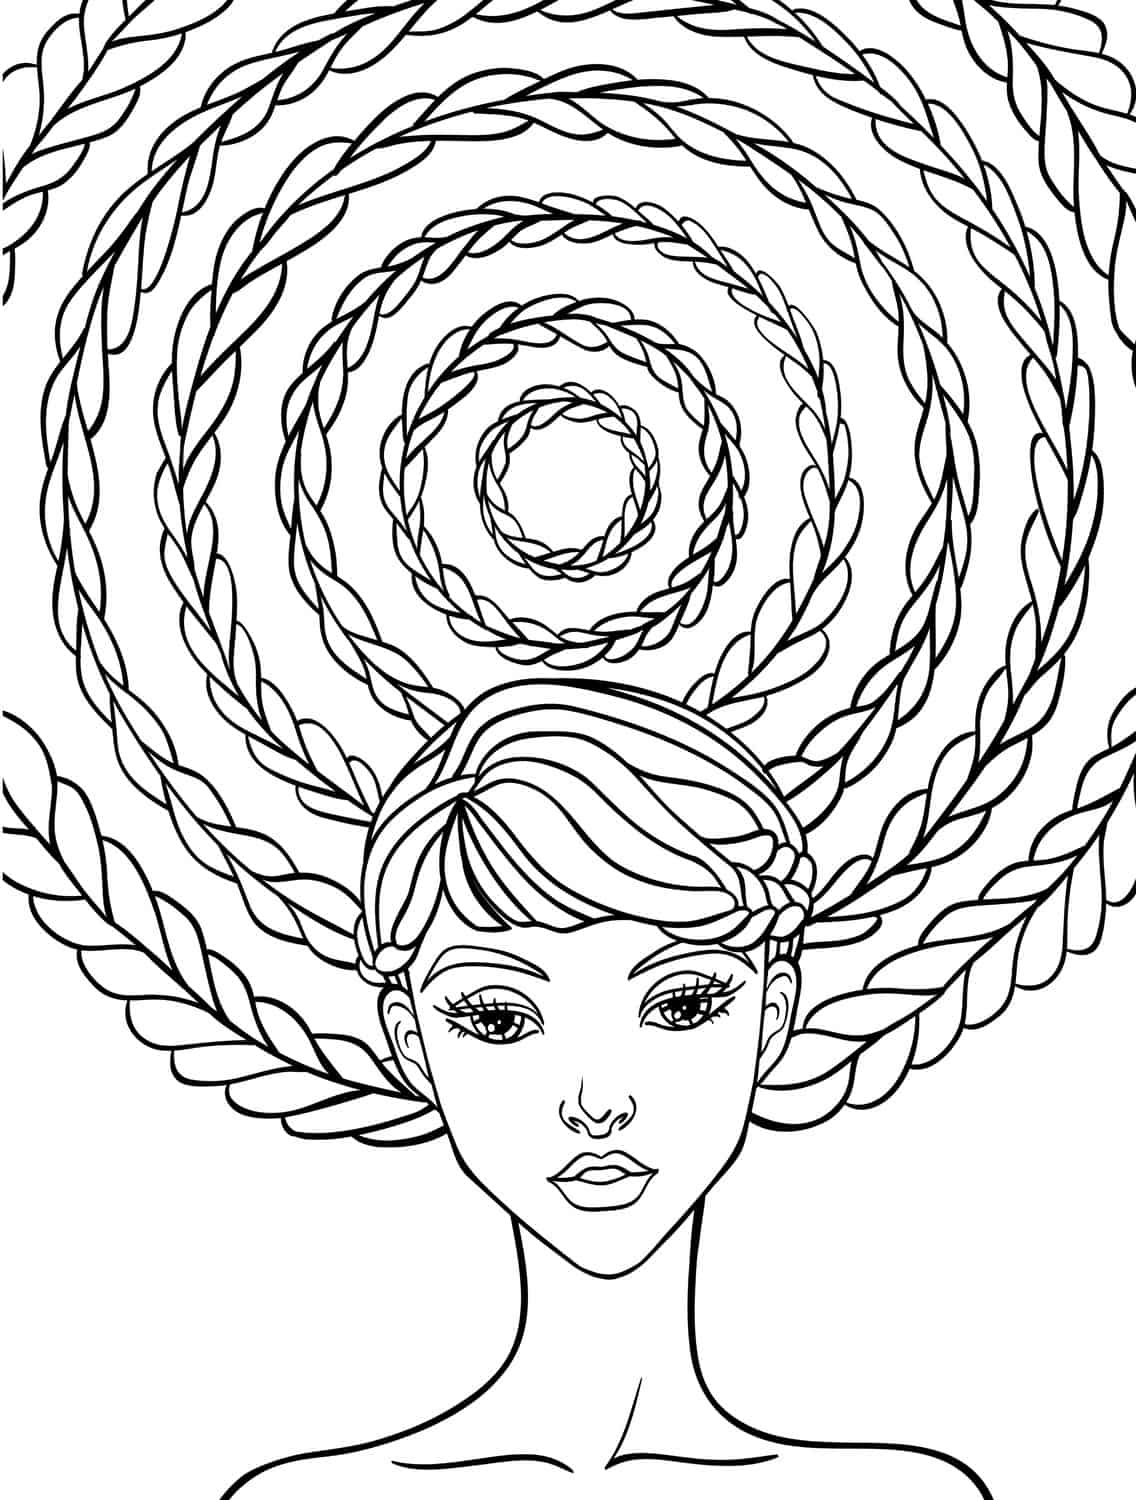 relaxing adult coloring pages downloads - Hair Coloring Pages